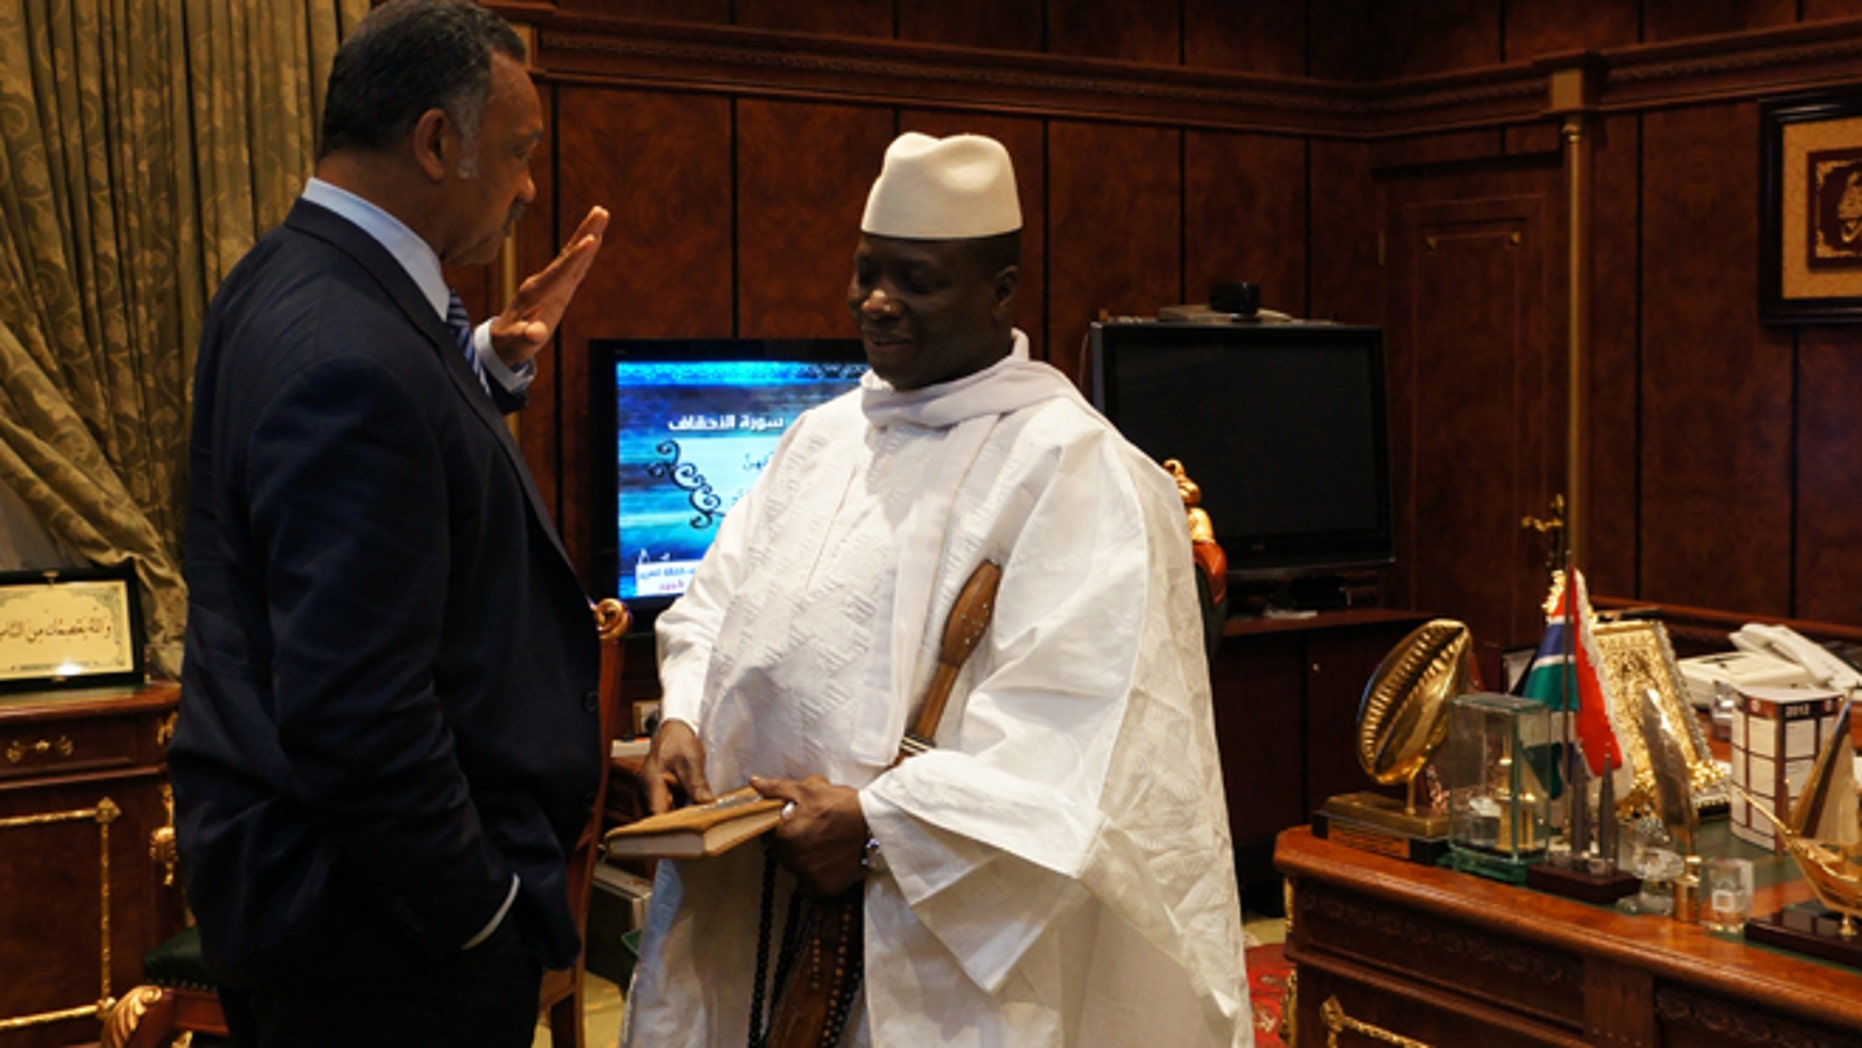 Sept. 17, 2012: The Rev. Jesse Jackson meets with Gambian President Yayha Jammeh